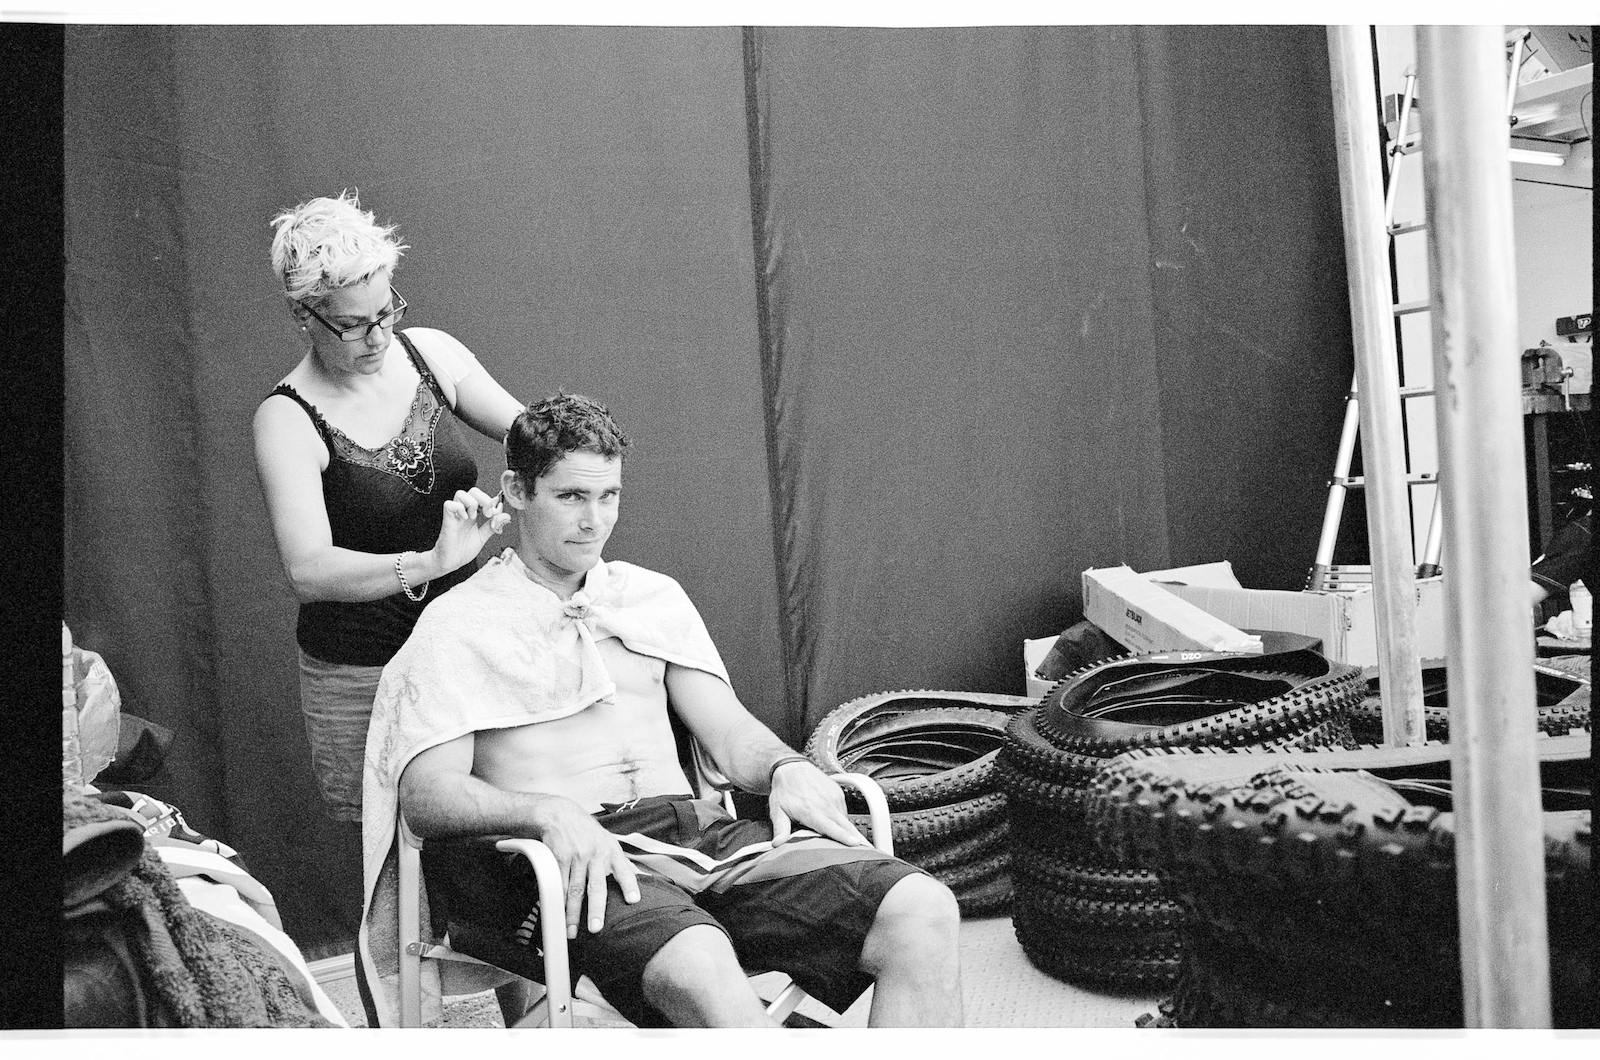 Mick Hannah getting his hair cut. Shot with LEICA M6 35mm f 1.4 Summilux